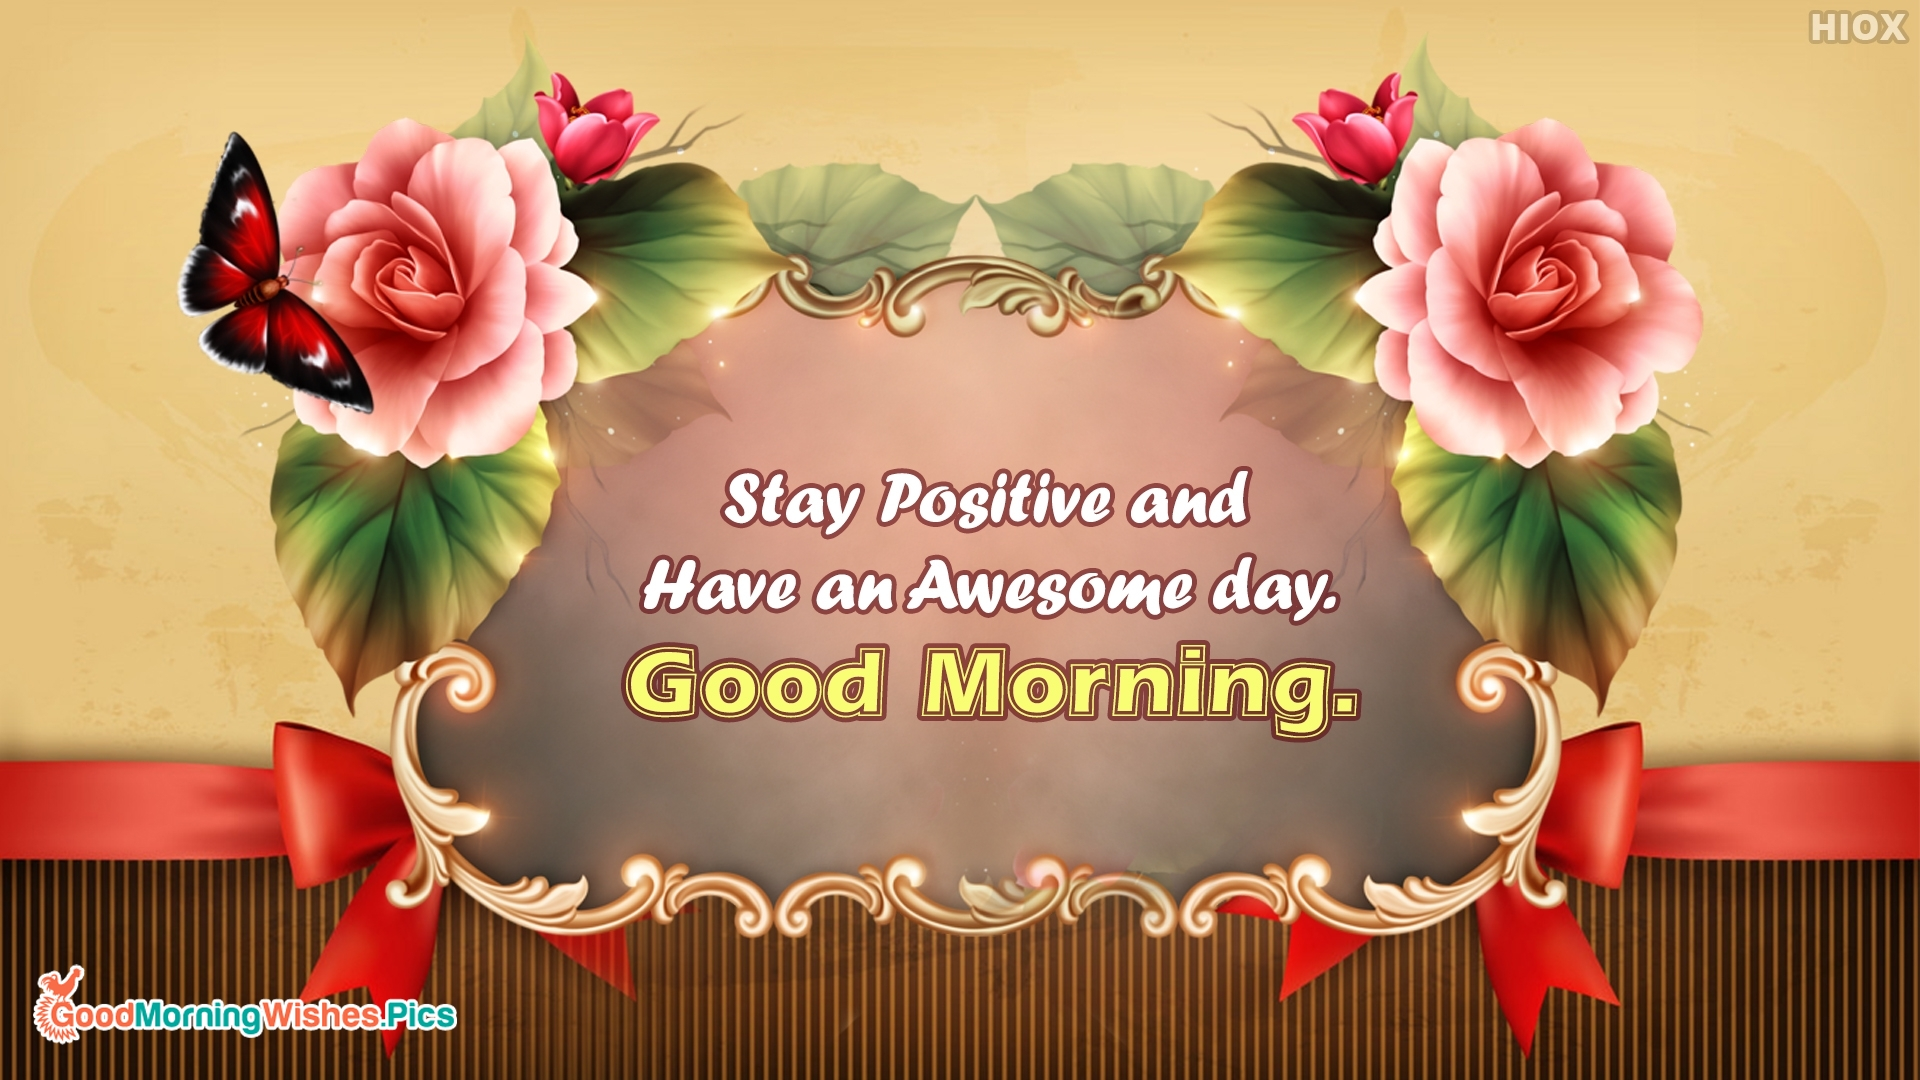 Stay Positive and Have An Awesome Day. Good Morning.